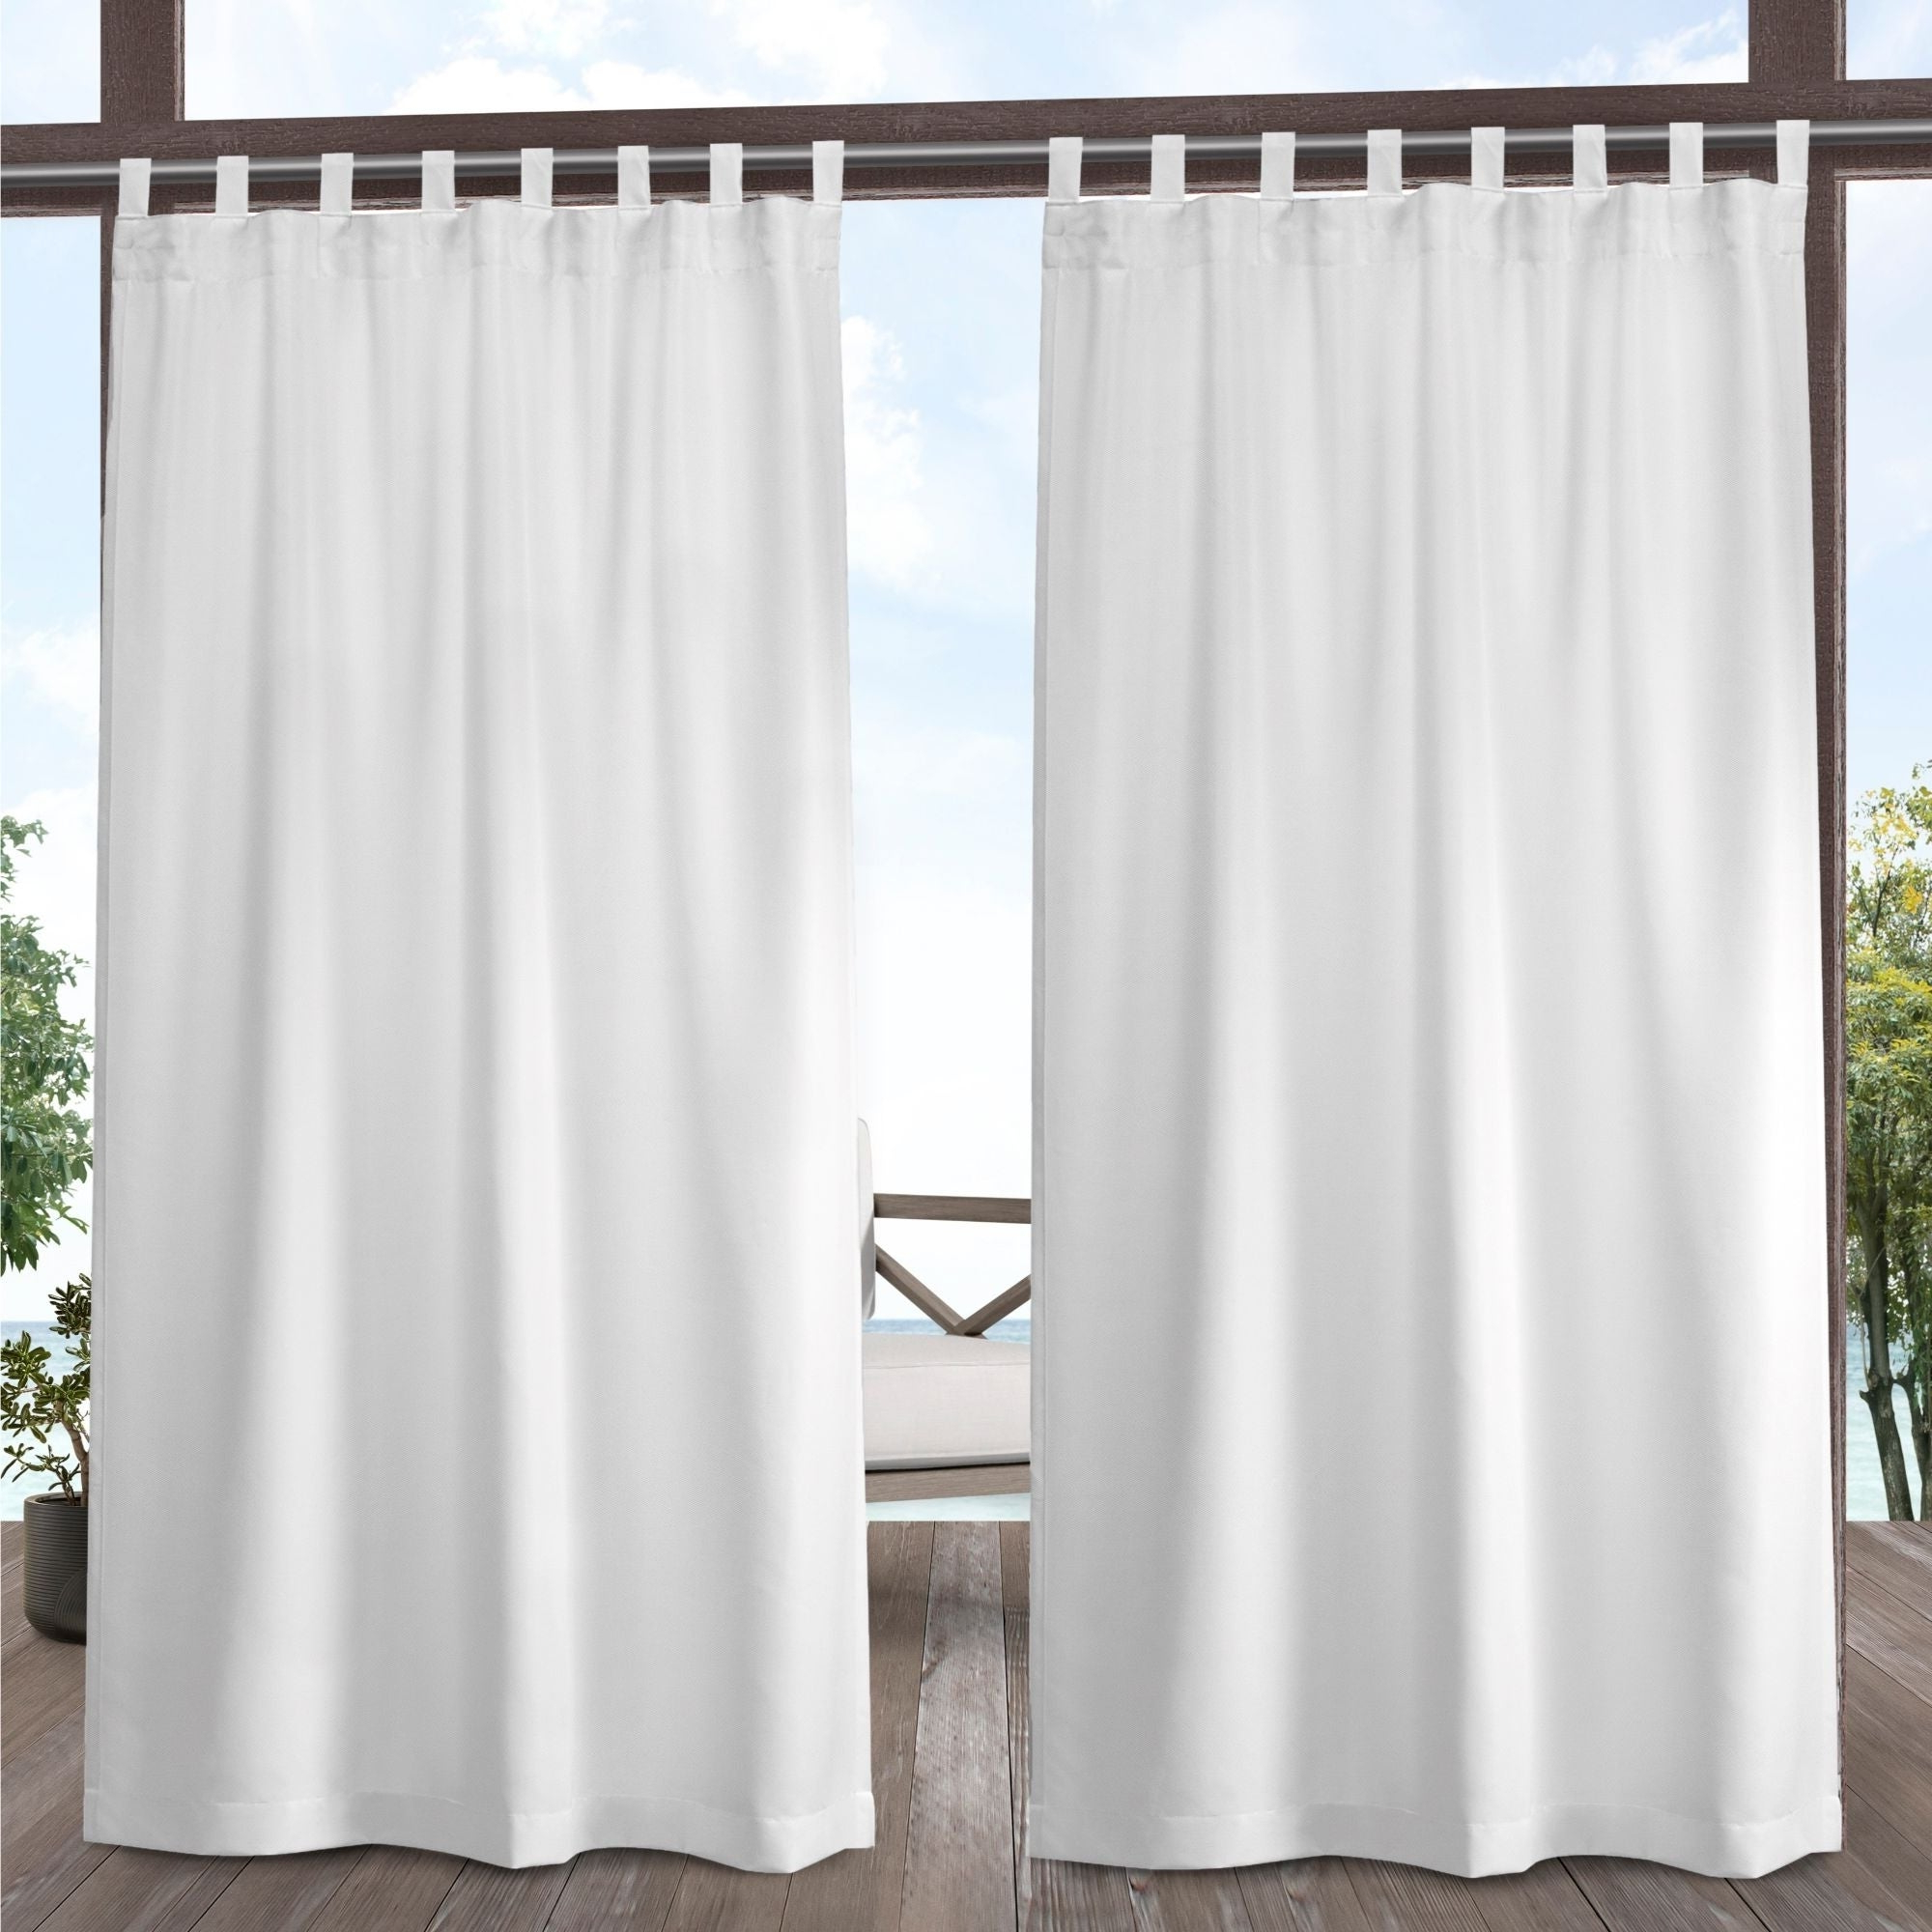 Indoor/outdoor Solid Cabana Grommet Top Curtain Panel Pairs With Regard To Trendy Ati Home Indoor/outdoor Solid Cabana Tab Top Window Curtain Panel Pair (View 10 of 20)